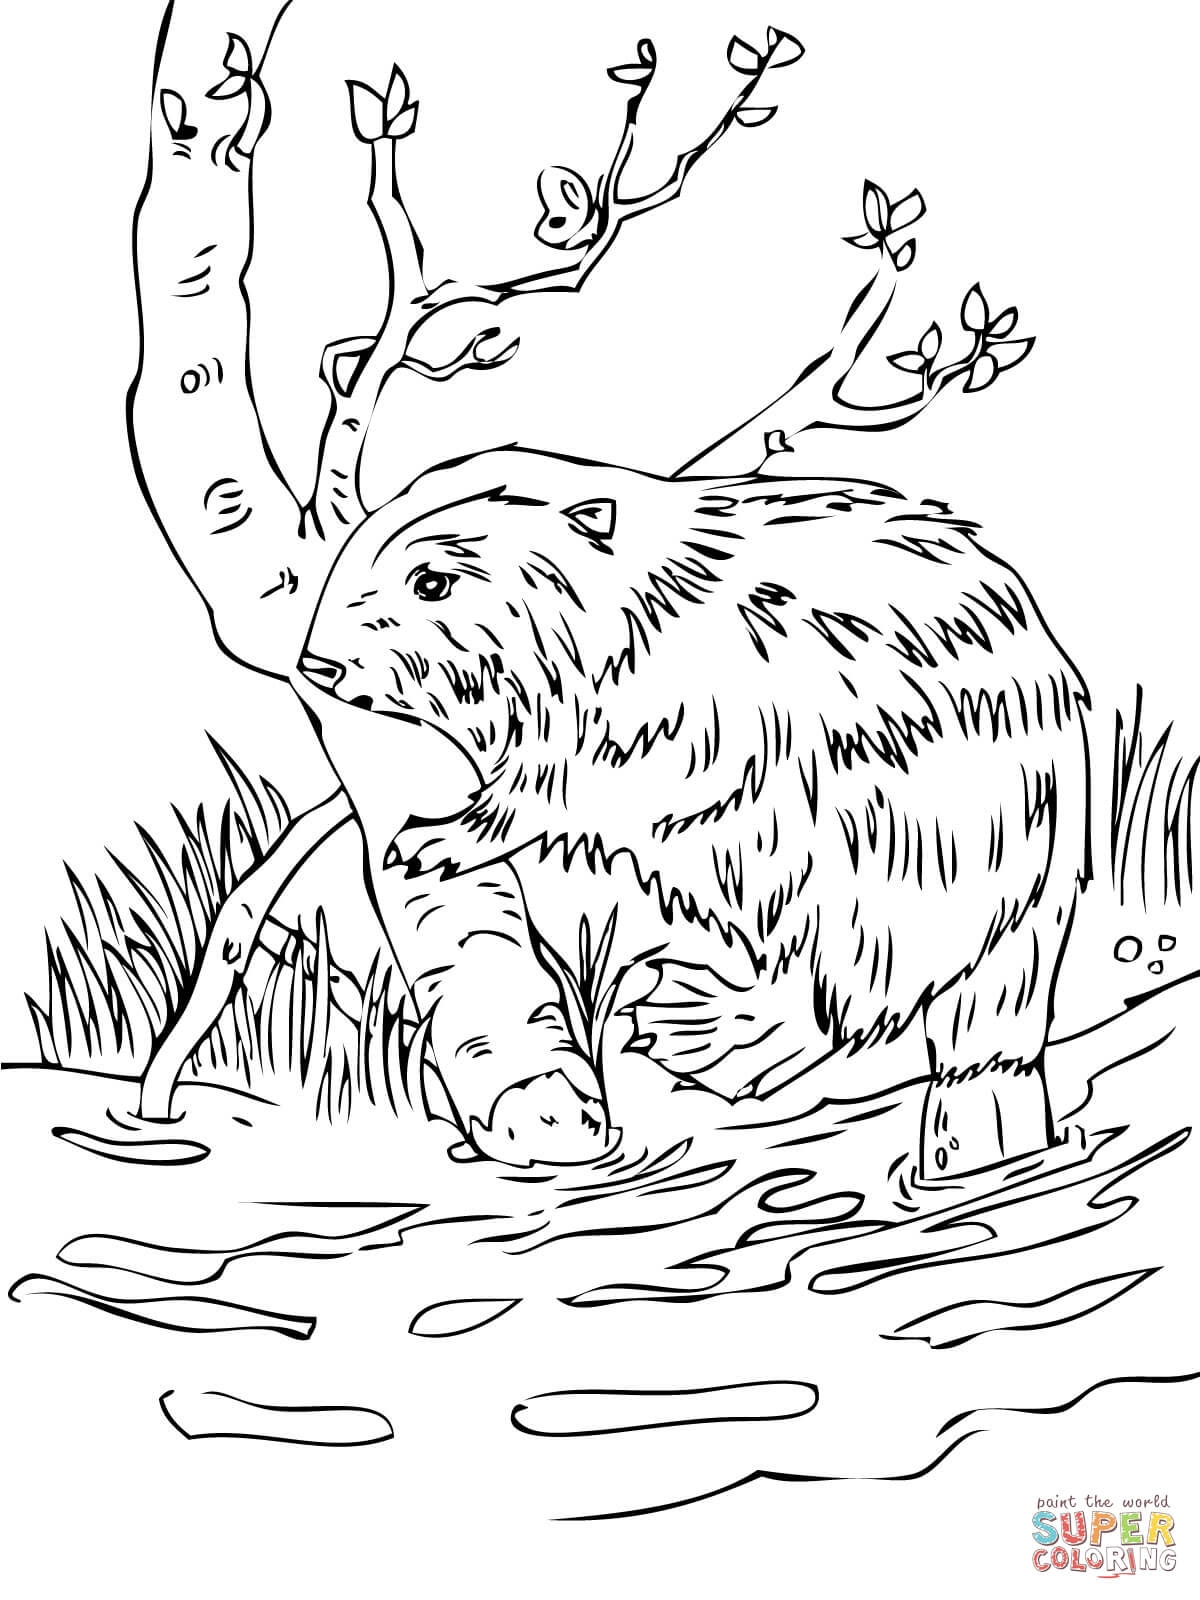 beaver coloring page - beaver 4 2